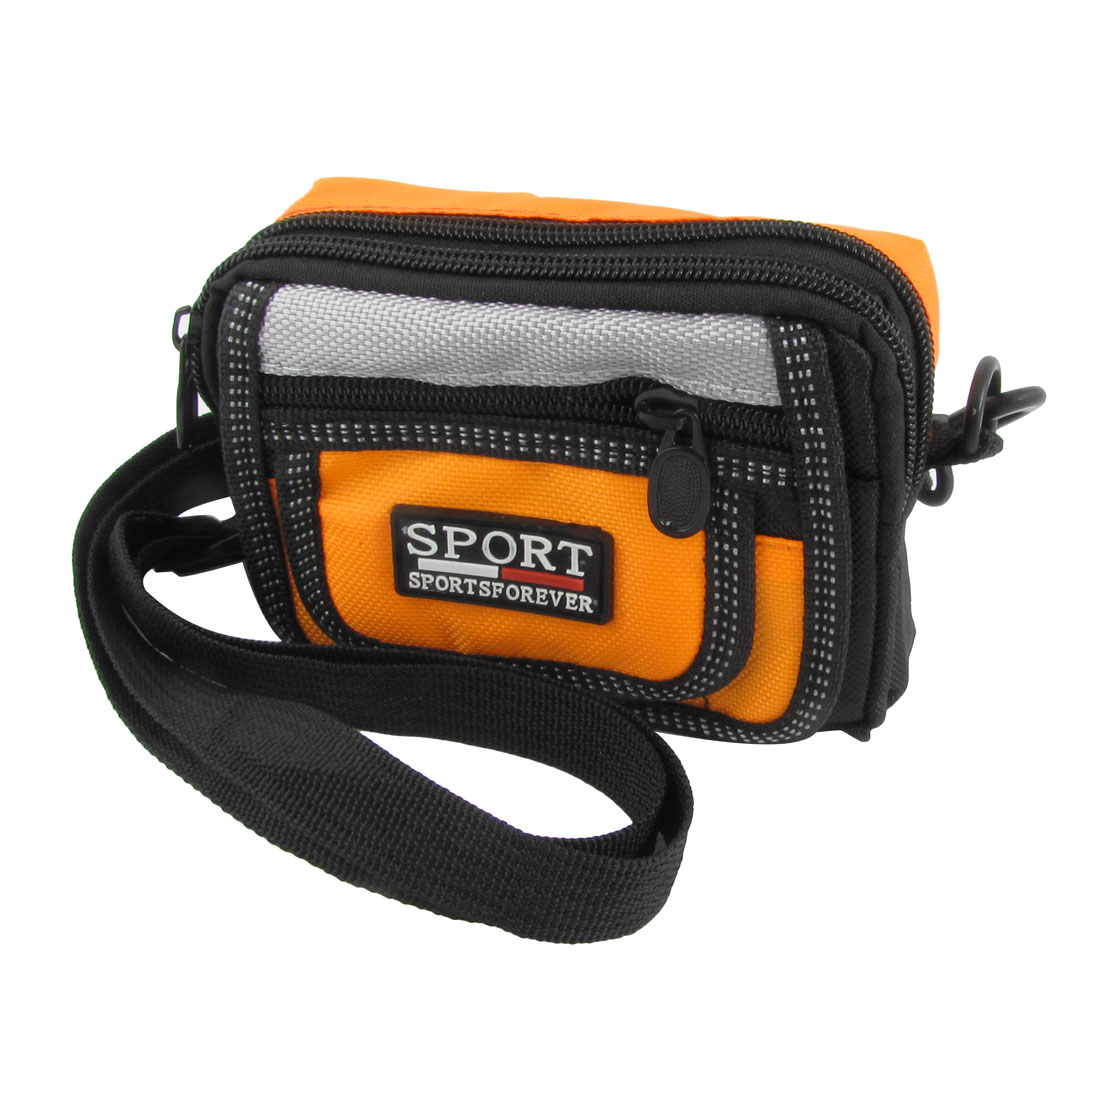 Portable Travel Digital Camera Zip Up Shoulder Pouch Waist Belt Bag Yellow Black